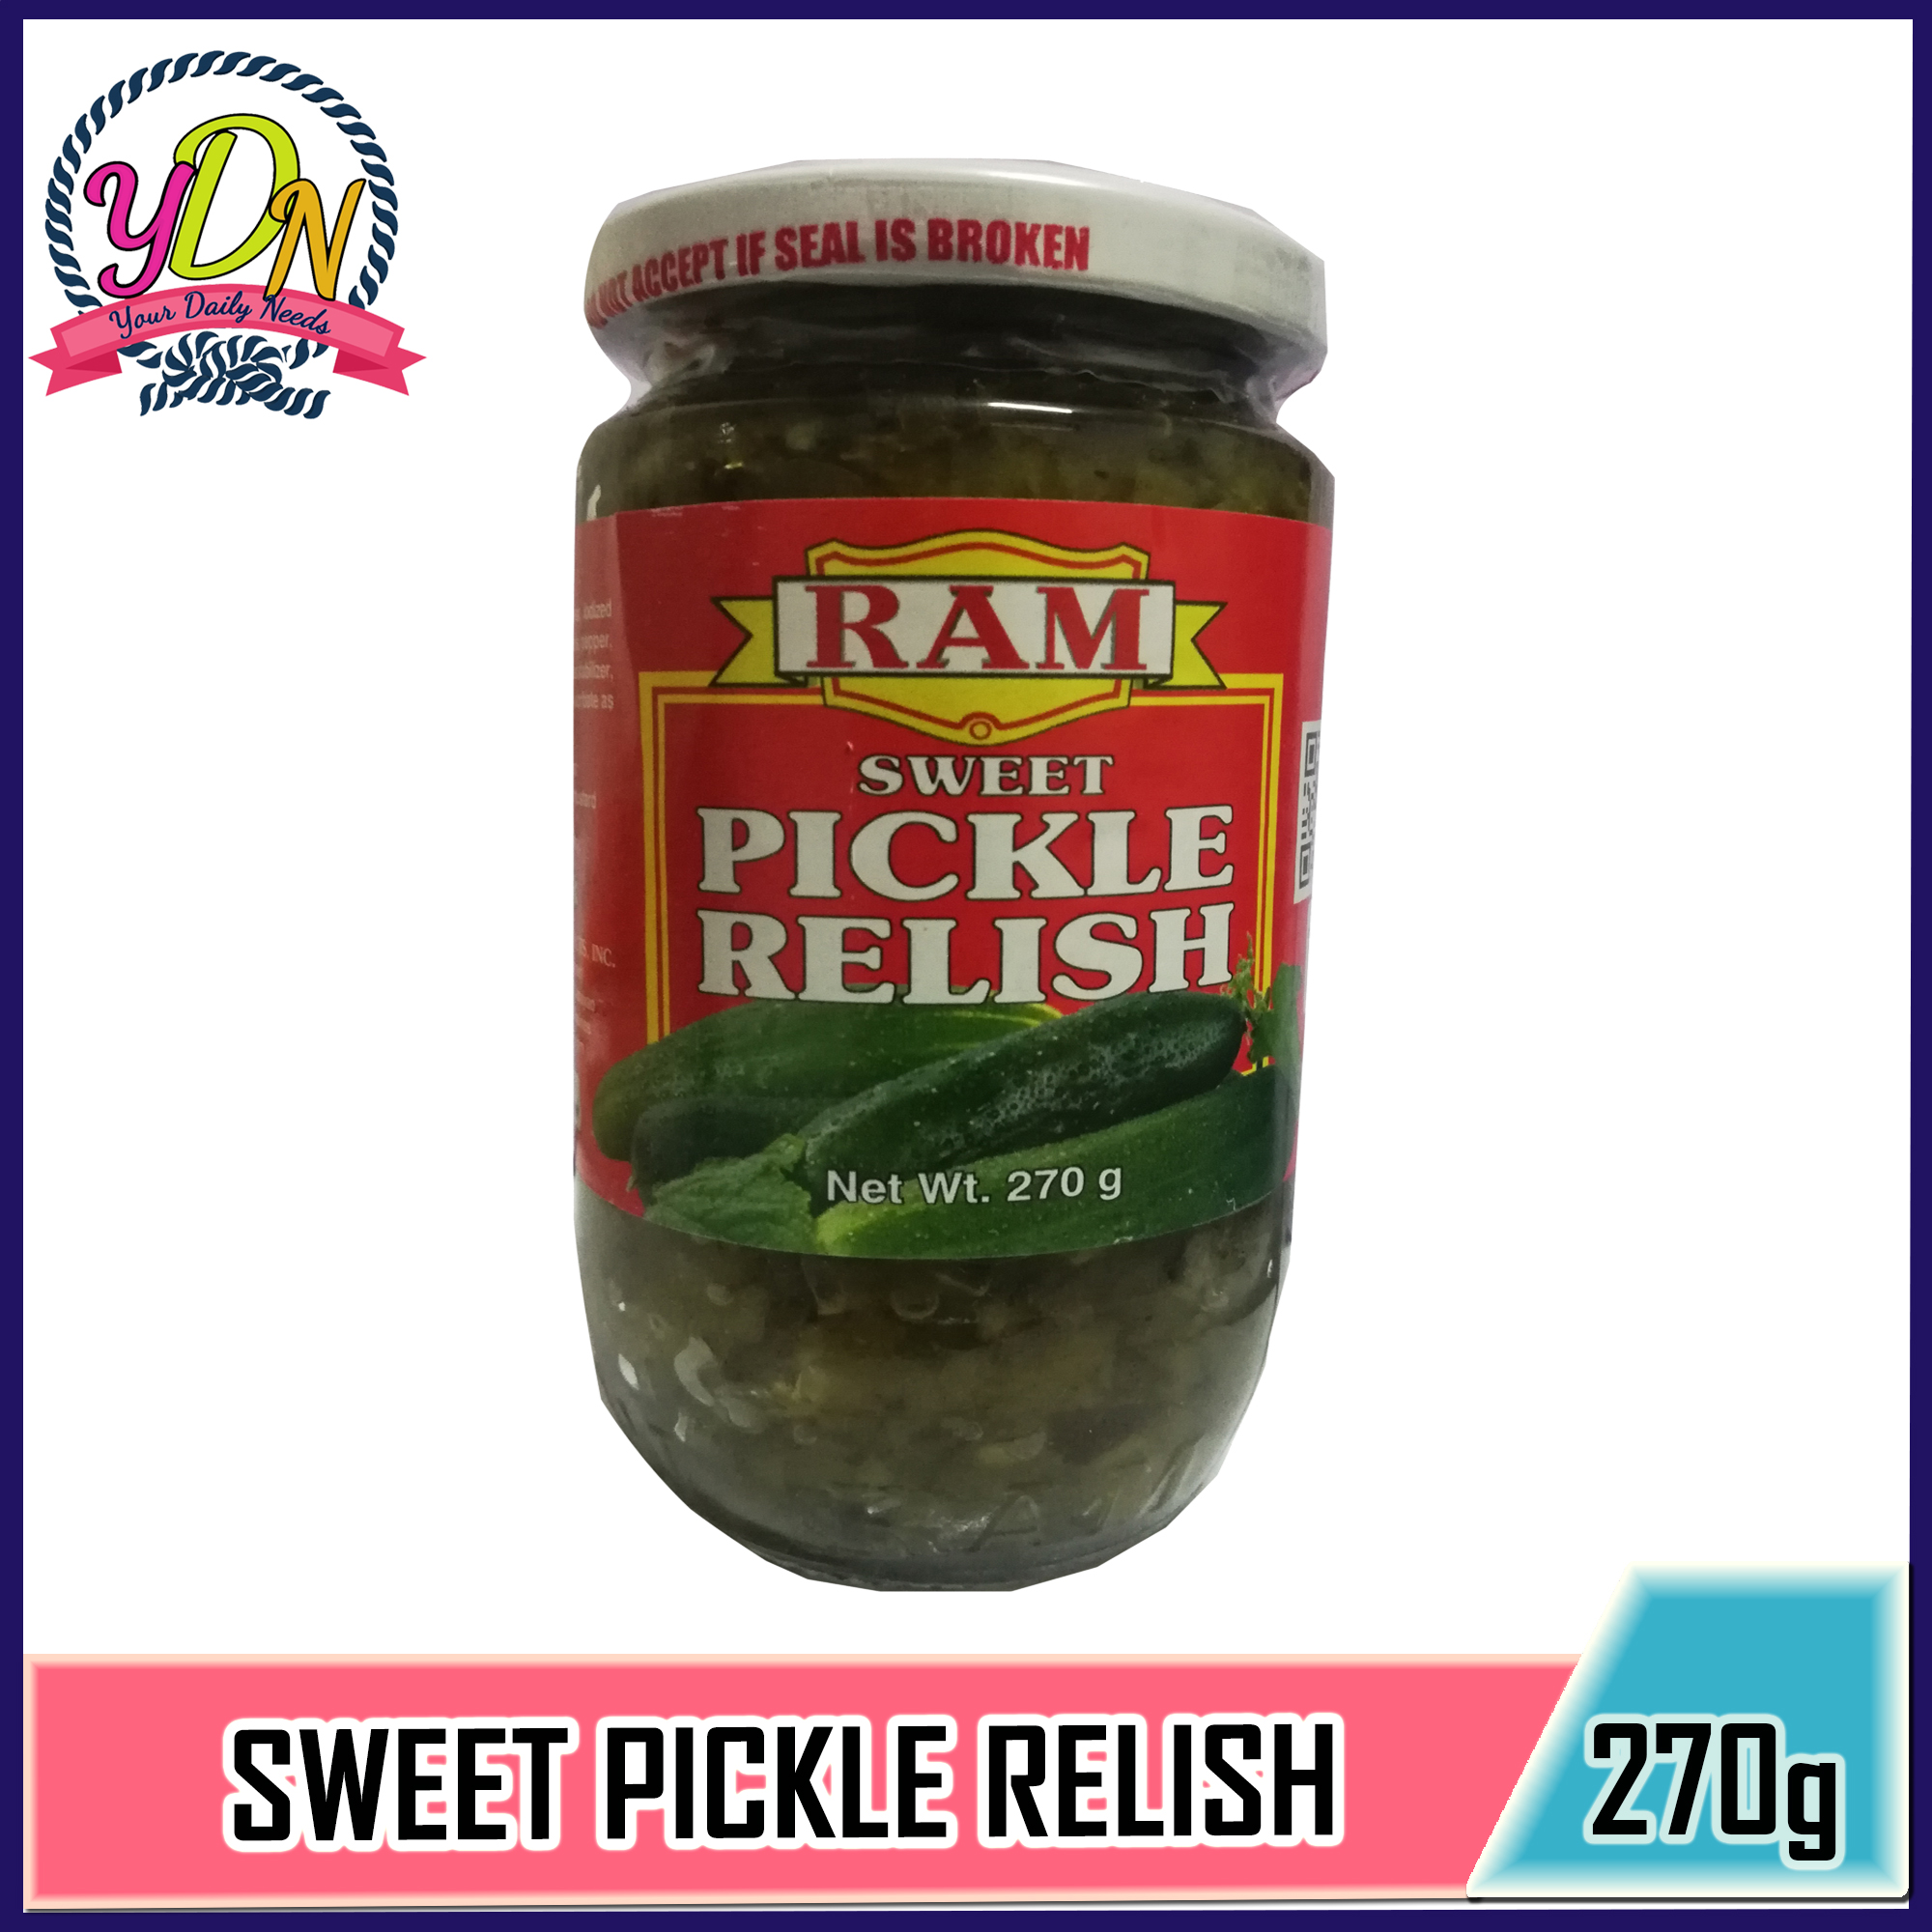 Delicious Ram Pickle Relish 270 Gram For Salad Sandwich Mixture Fish Accompaniment Health Benefits Of Pickles Contain Vitamin K Have Probiotic Powers Pickles Are Blood Sugar Friendly Round Out Your Daily Diet Replenish